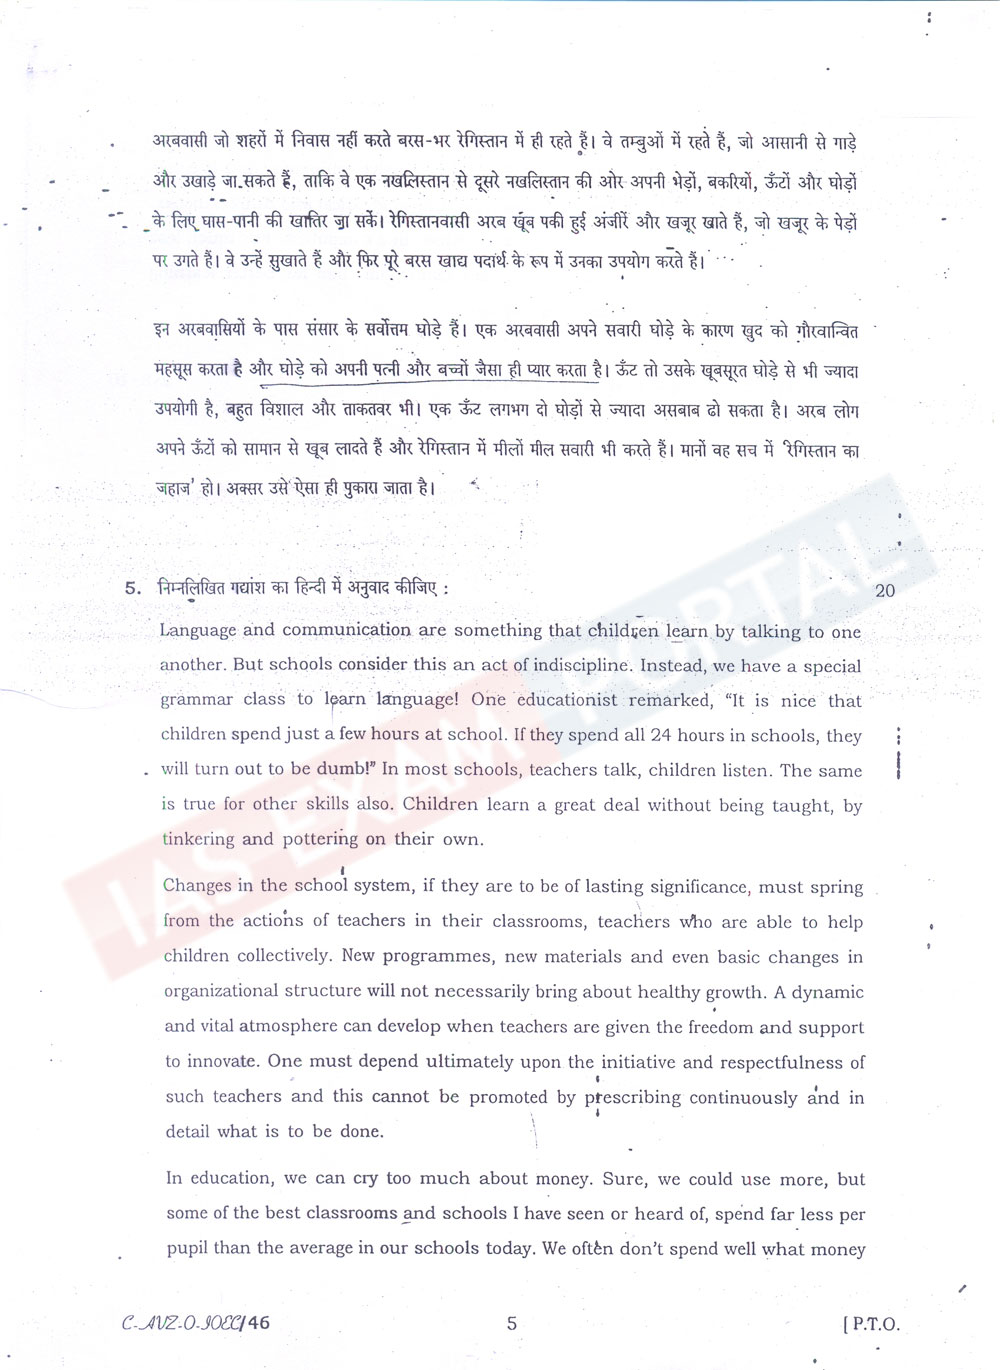 exam ques paper Tet exam sample question papers with answers teacher eligibility test (tet) 2018 for tet model question papers 2018 tet sample question papers tet mock test question paper for 2018 exam, this tet question are based on the syllabus but here some of the question may out of syllabus, just for your better exam tet exam.